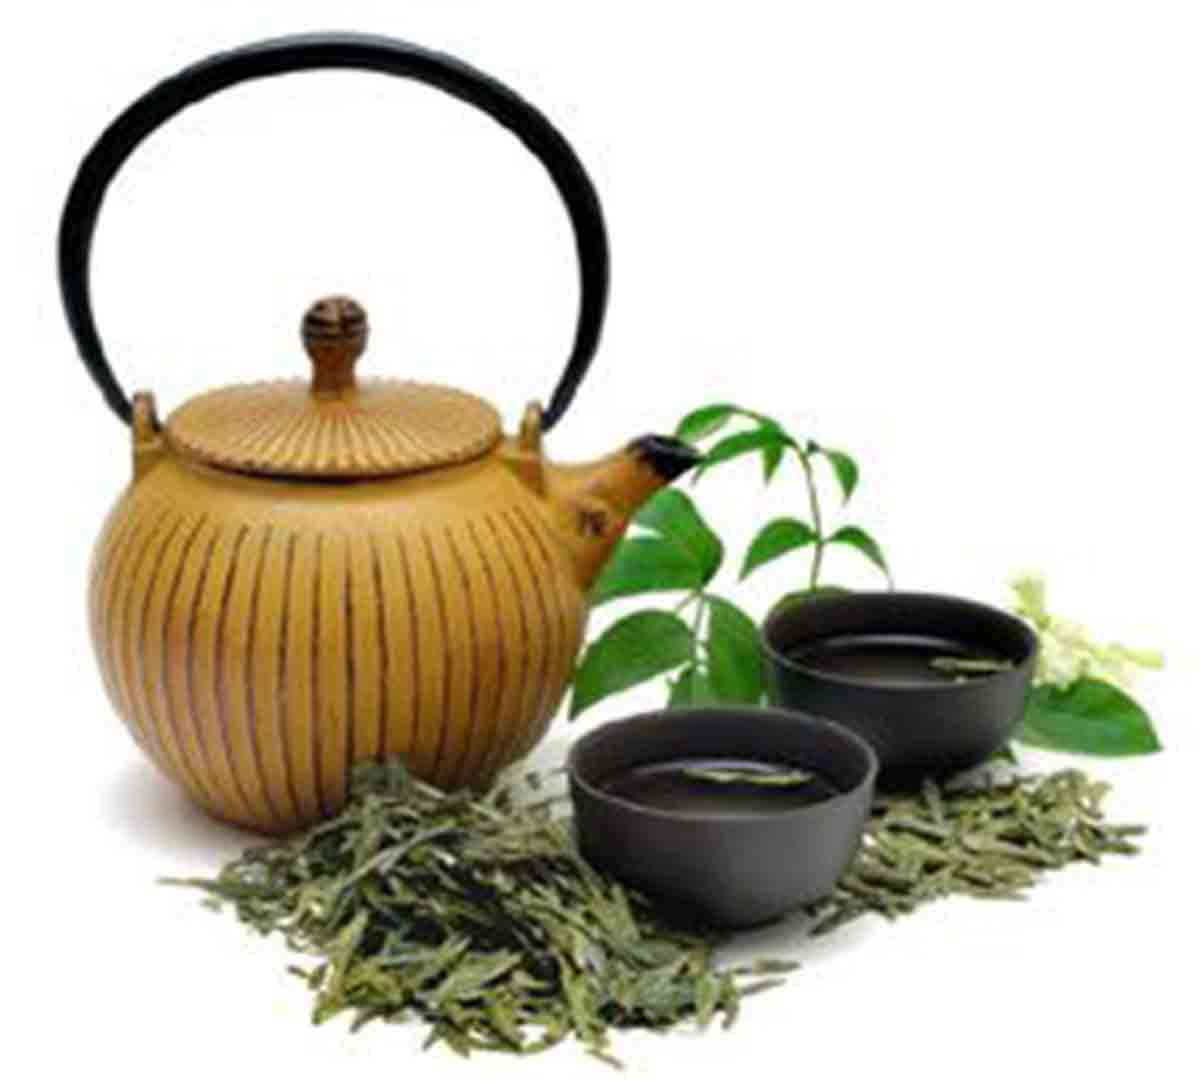 Chinese tea longjing